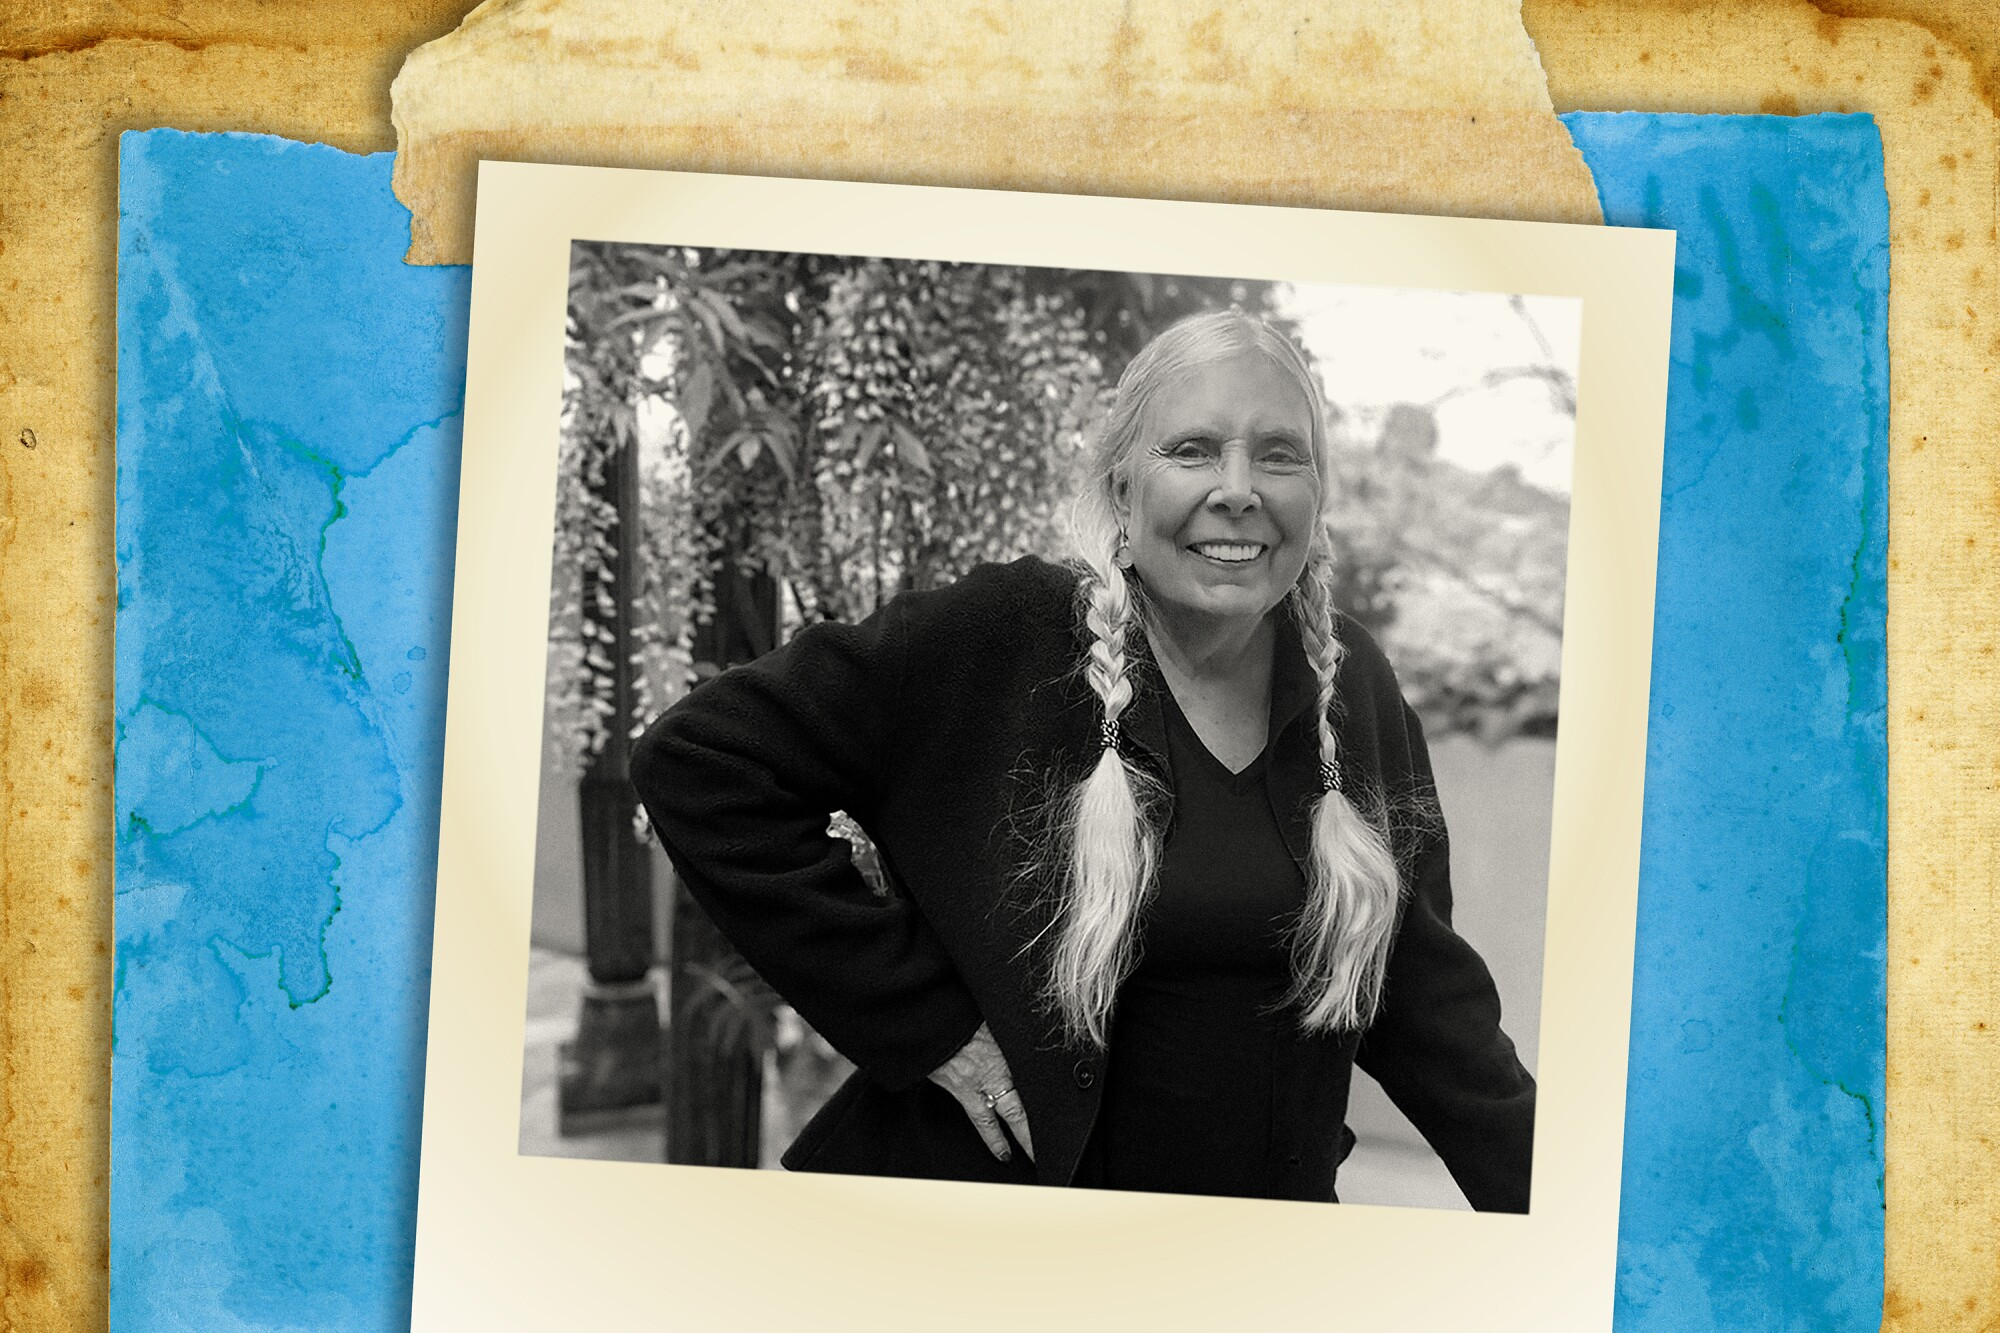 Photo illustration of Joni Mitchell, smiling with her hair in two braids